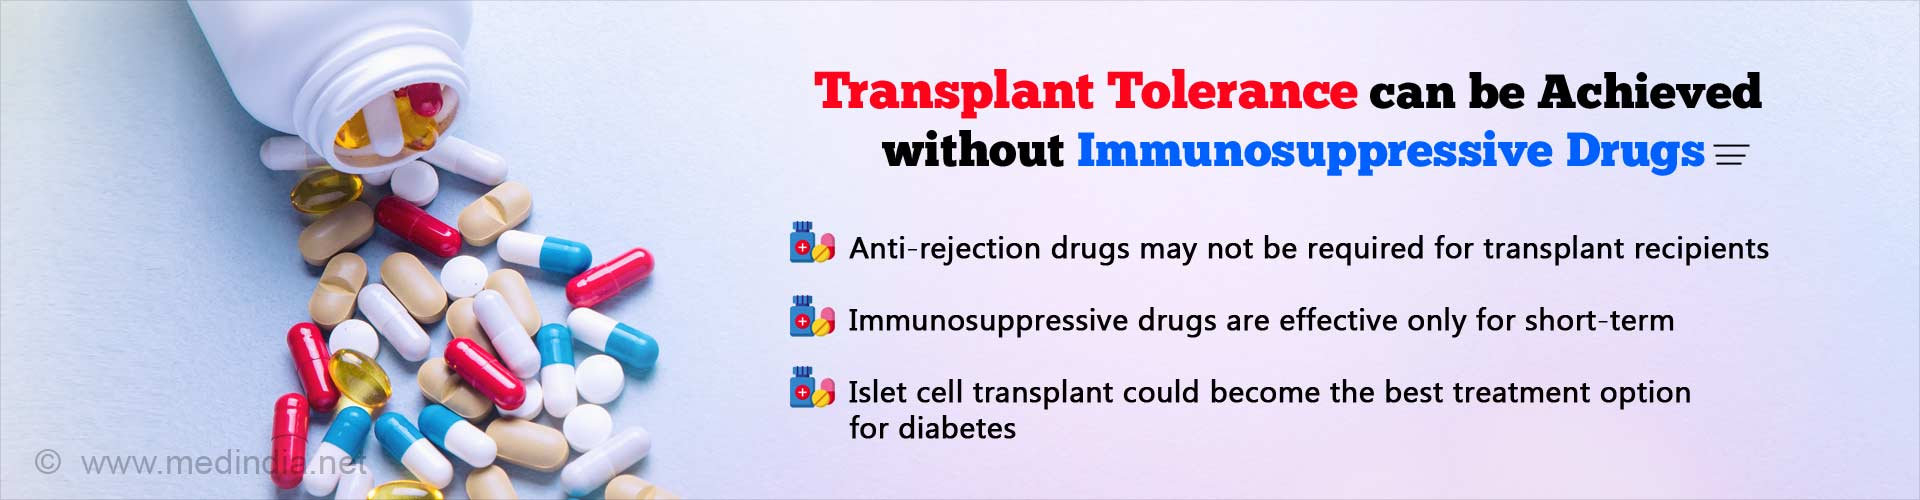 Transplant tolerance can be achieved without immunosuppressive drugs. Anti-rejection drugs may not required for transplant recipients. Immunosuppressive drugs are effectively only for short-term. Islet cell transplant could become the best treatment option for diabetes.